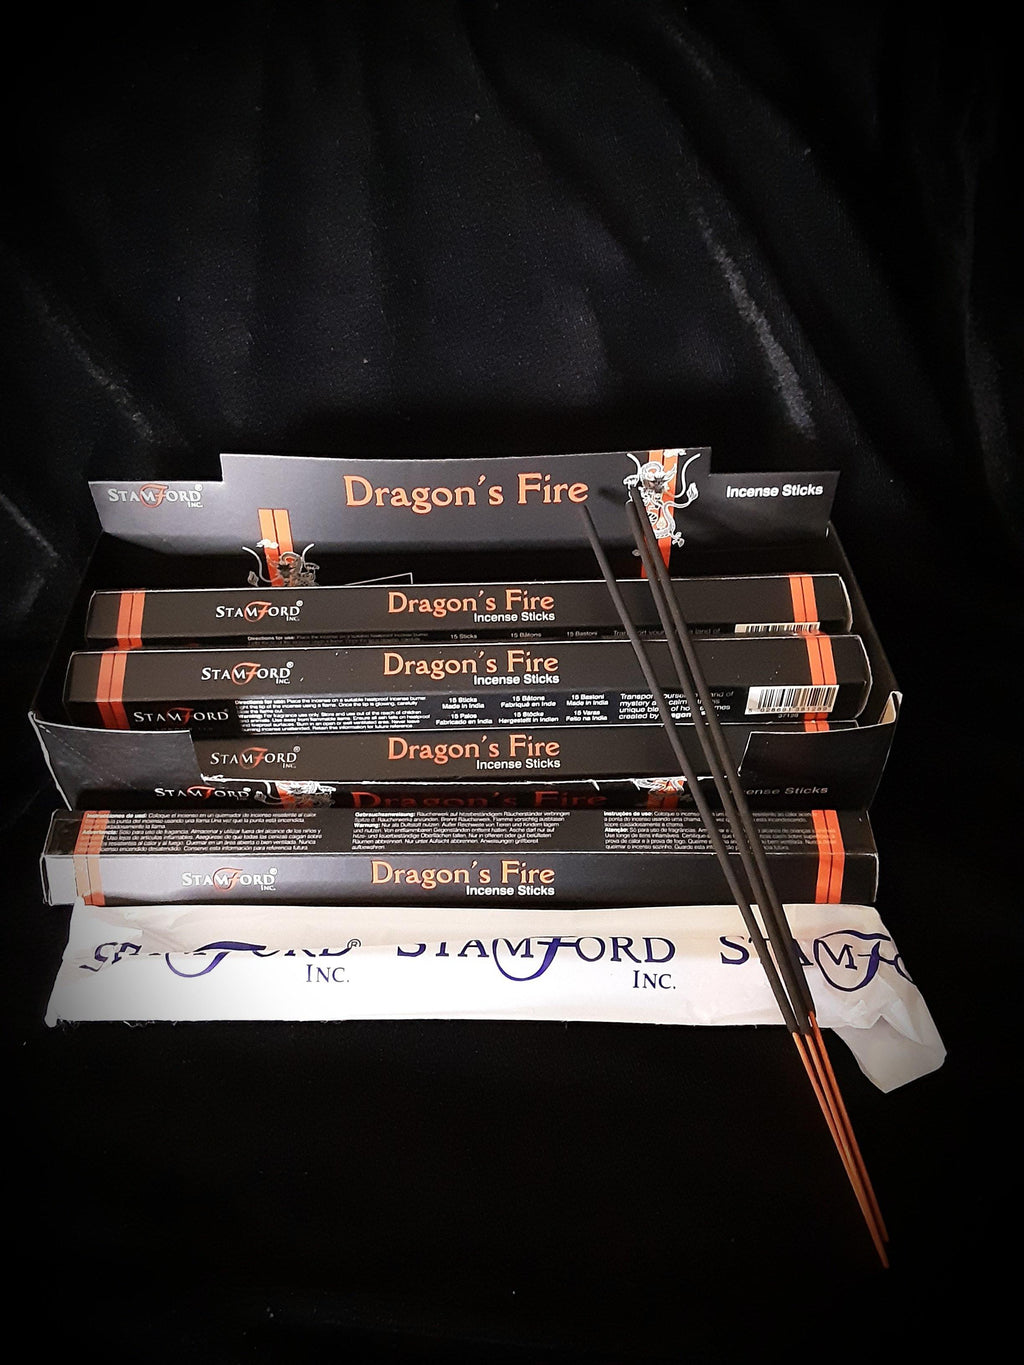 Stamford Dragons Fire Stick Incense